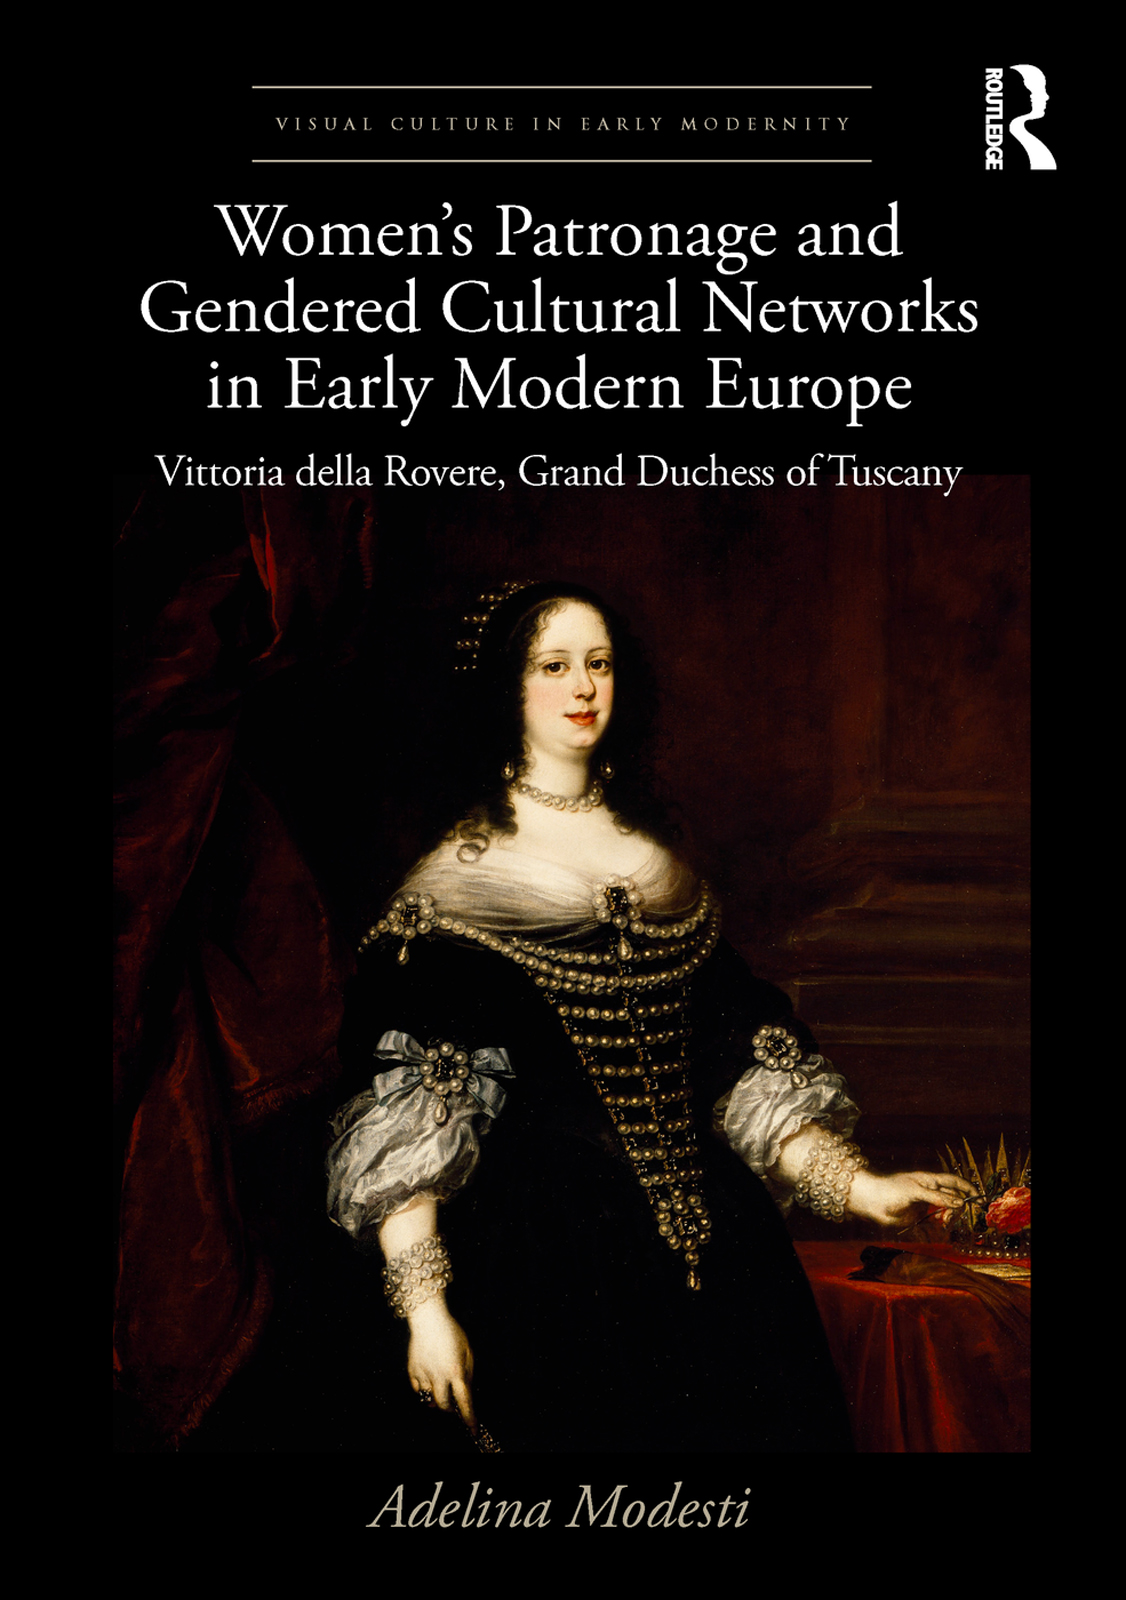 Women's Patronage and Gendered Cultural Networks in Early Modern Europe: Vittoria della Rovere, Grand Duchess of Tuscany book cover